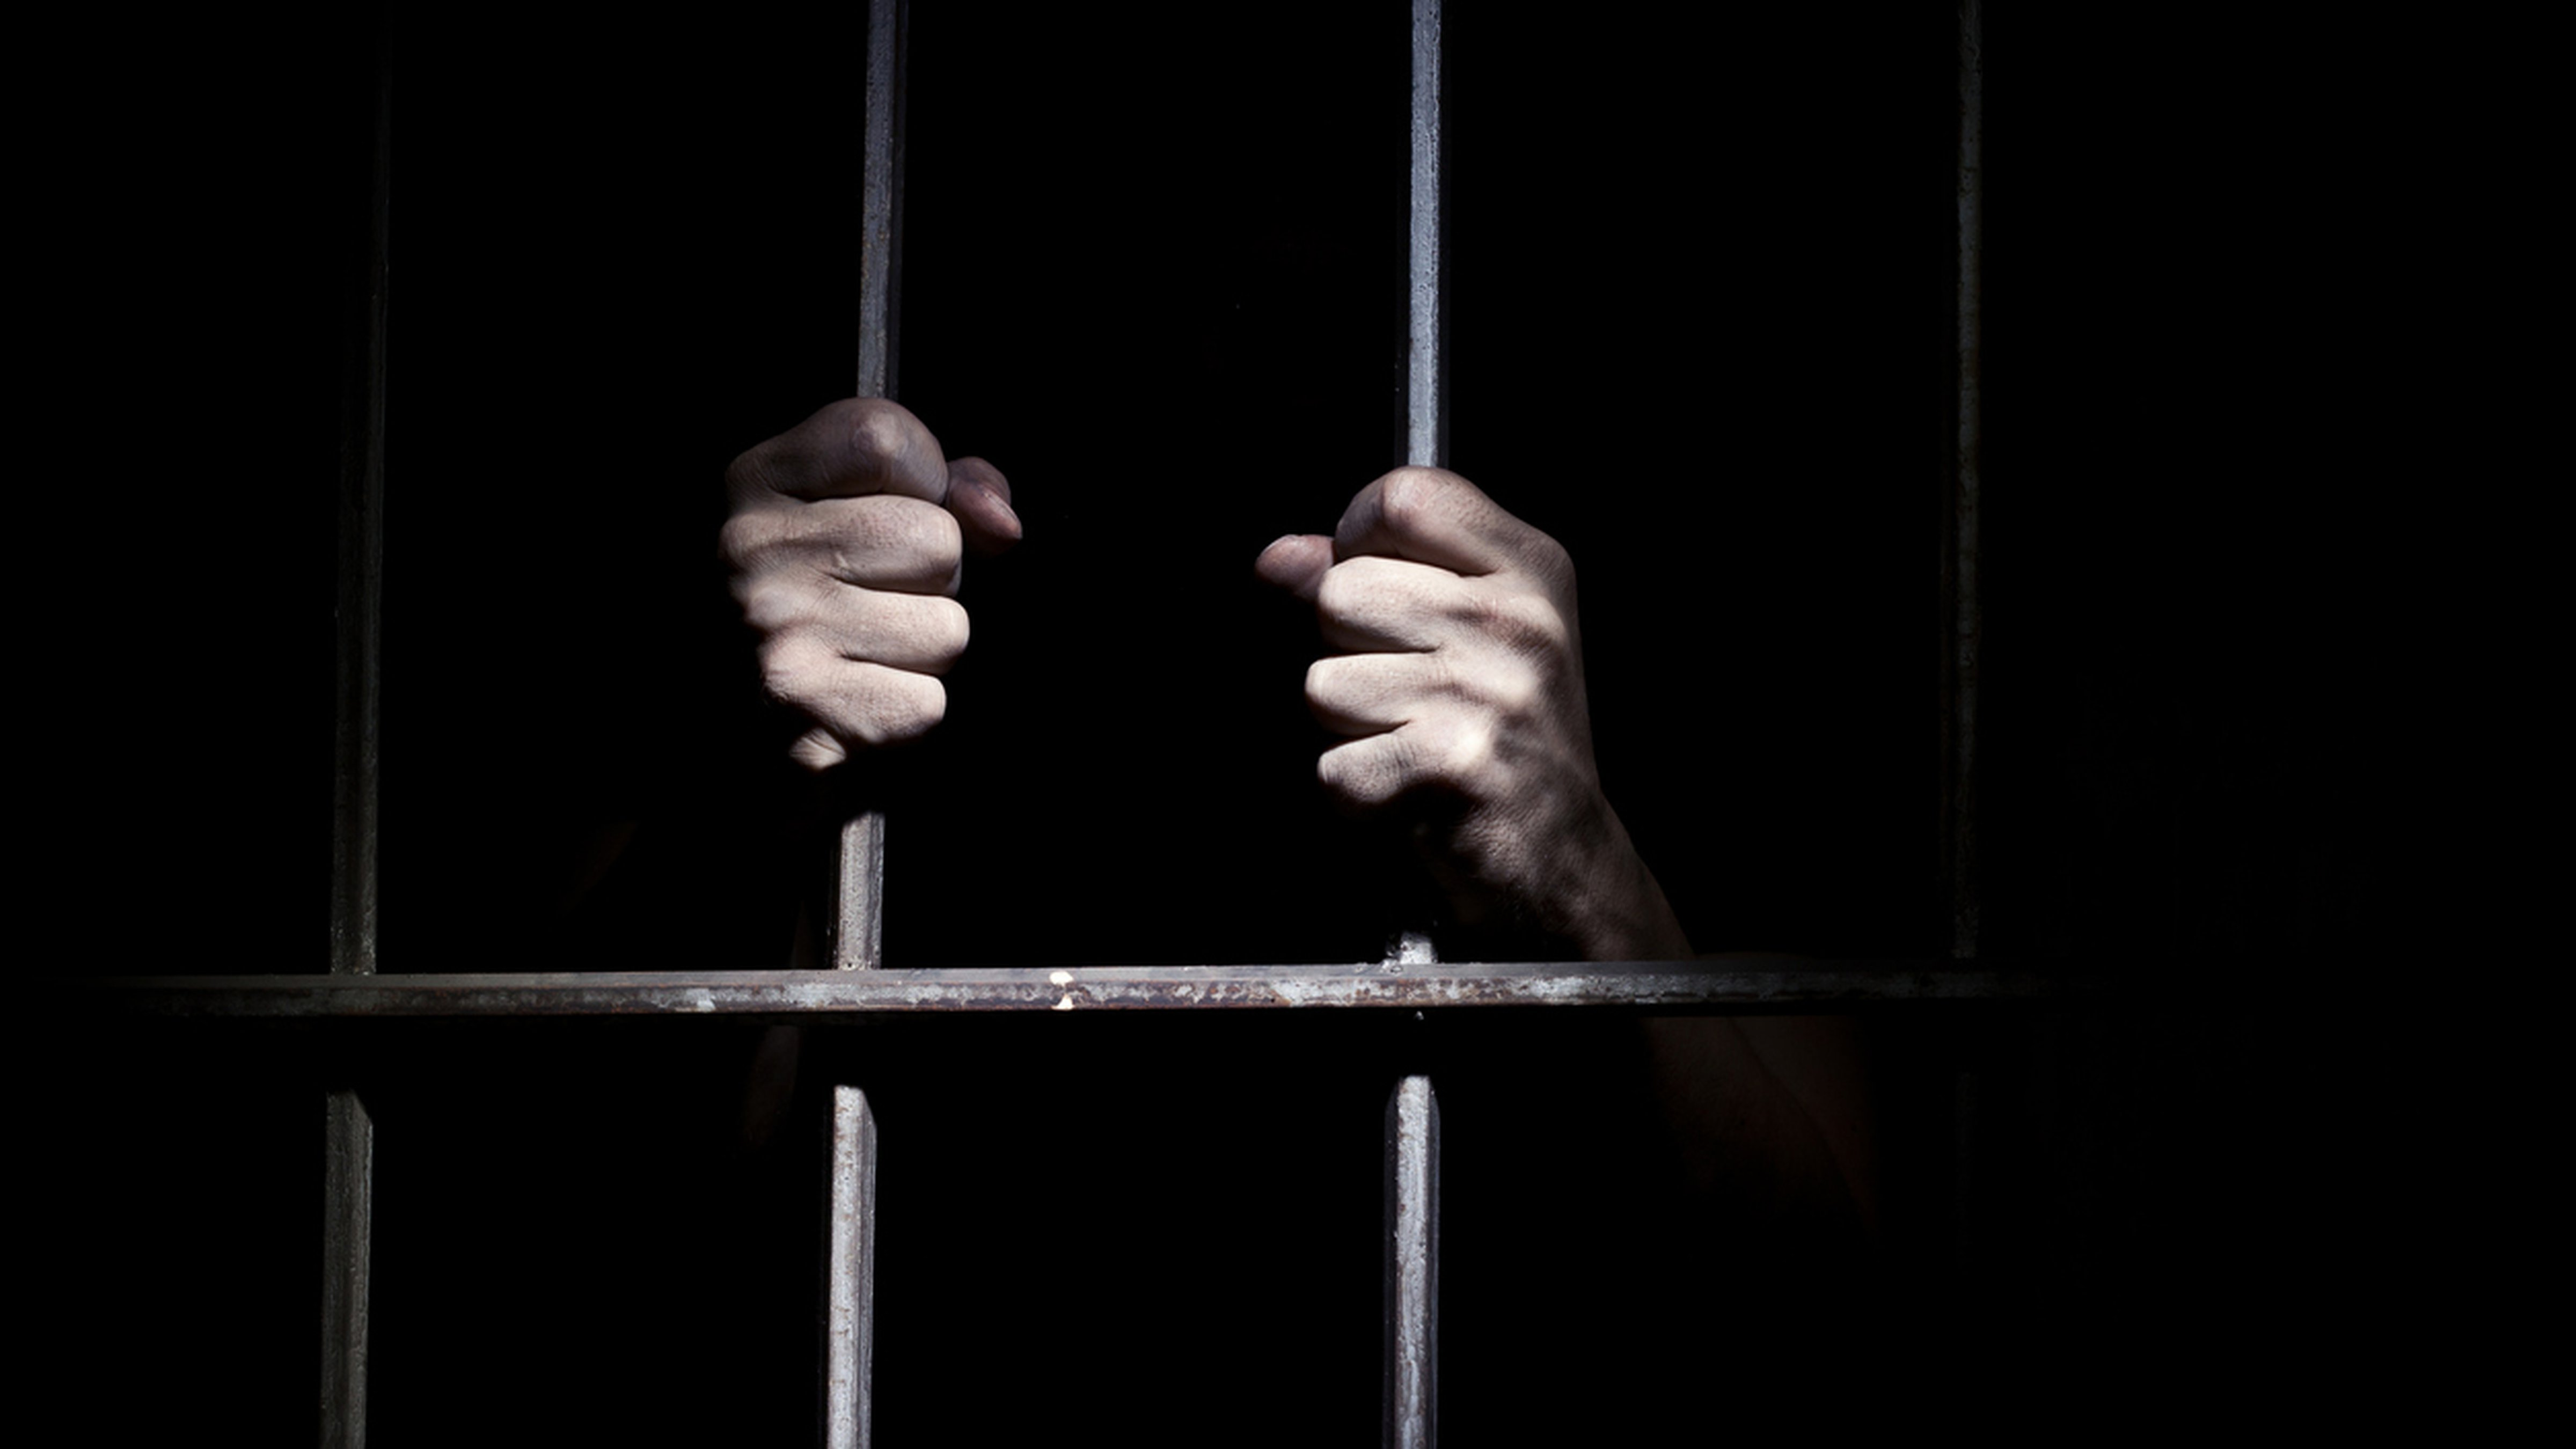 Can Rs 5 lakh compensate for 16 years of wrongful confinement?